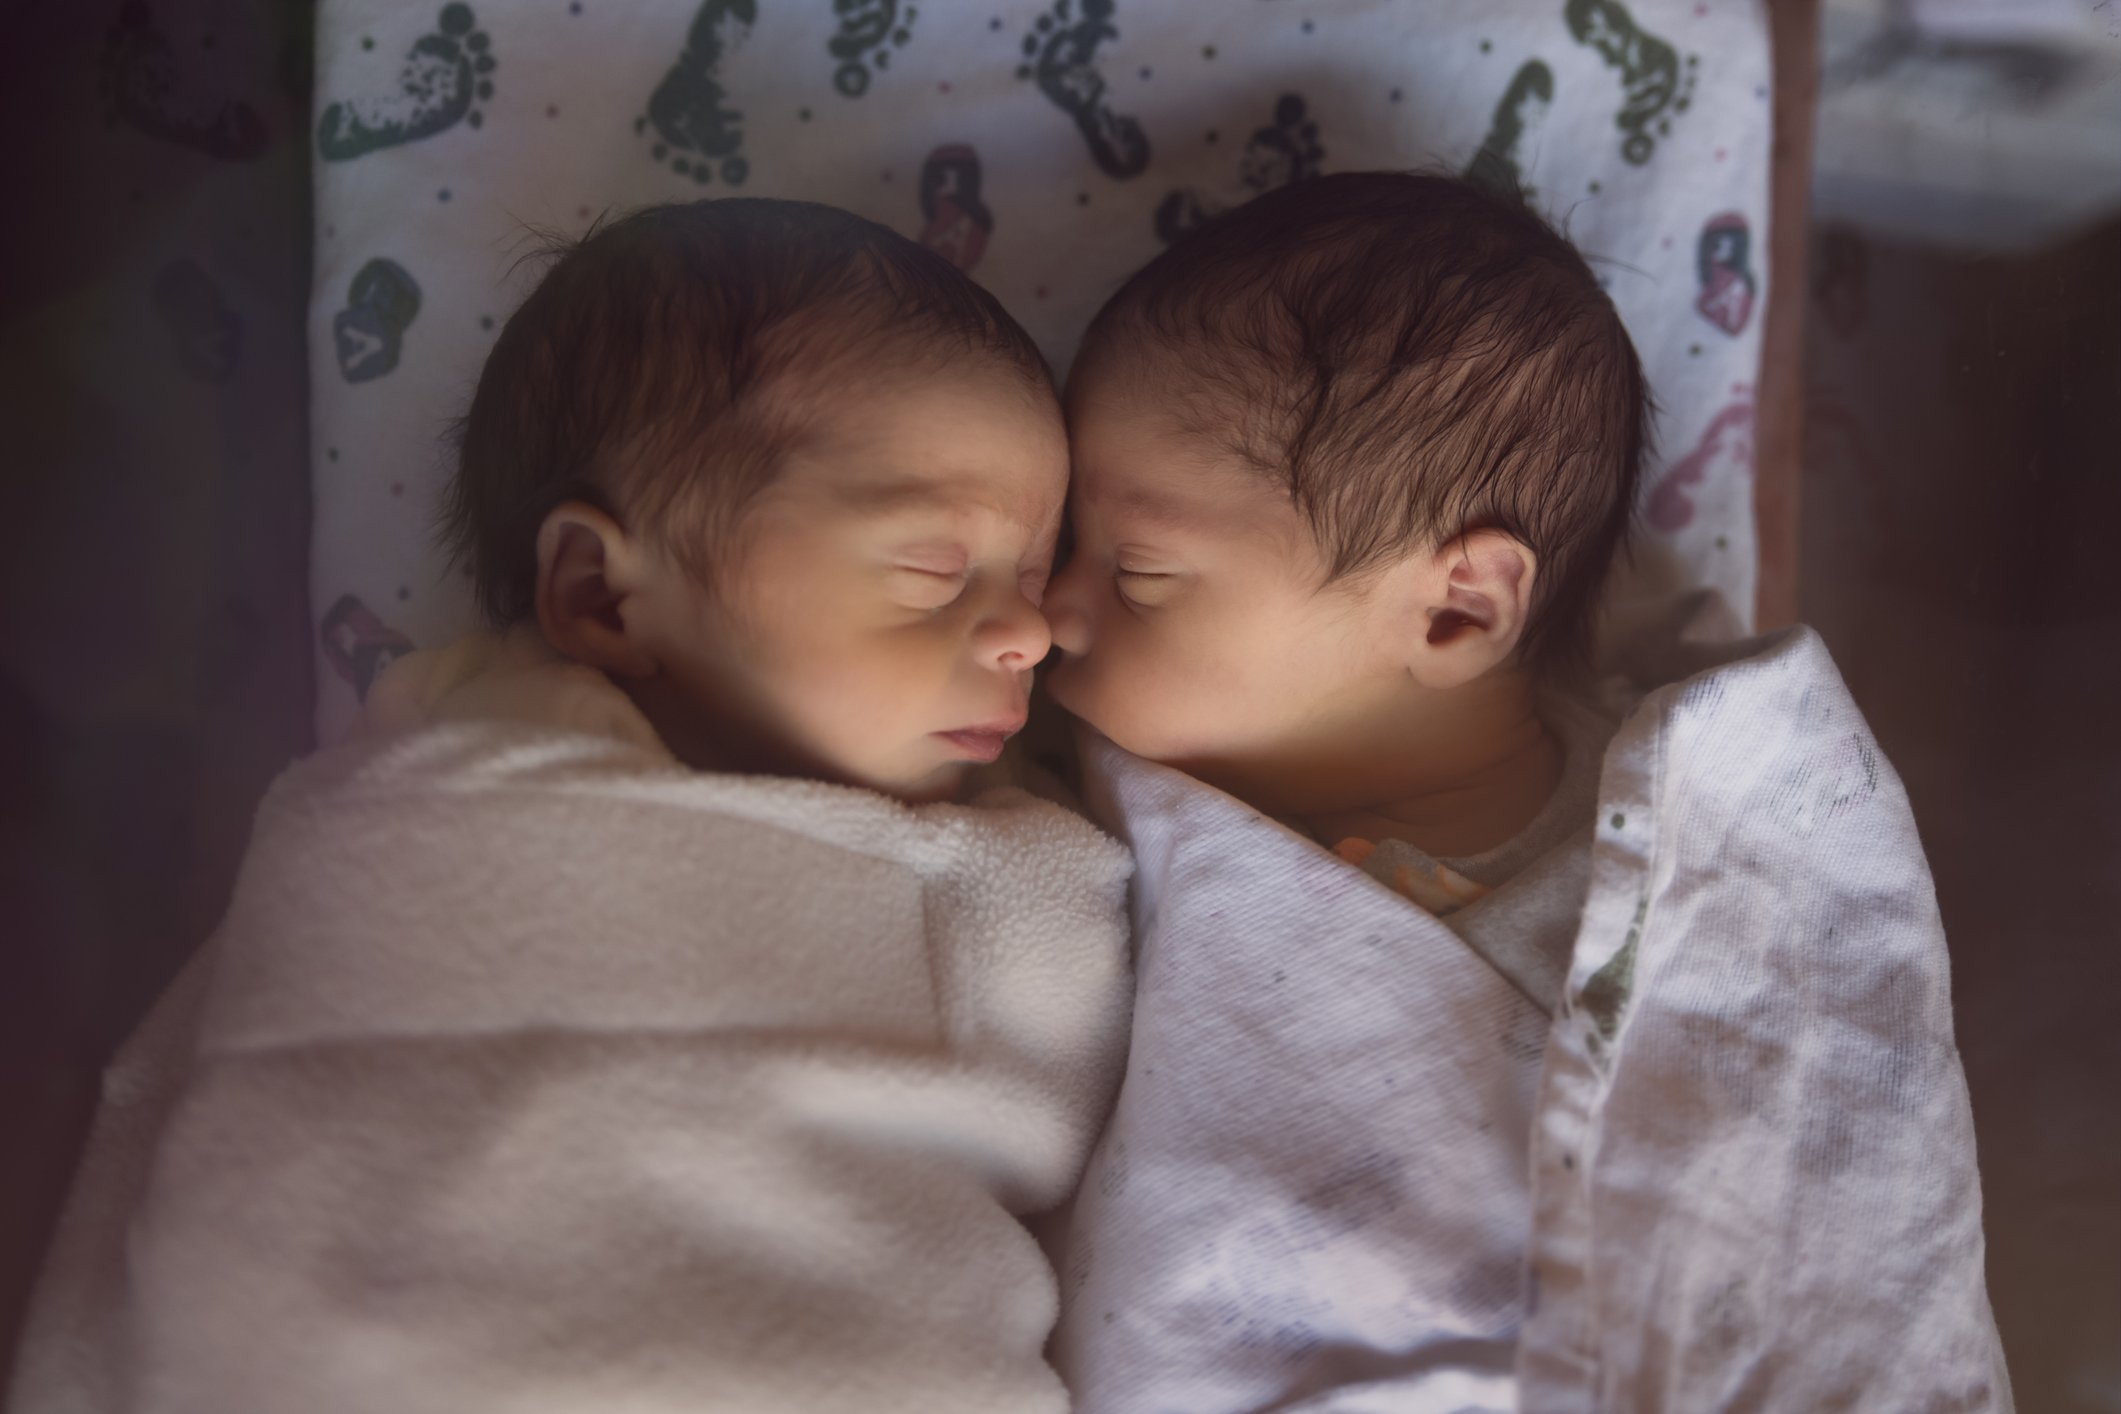 Premature Newborn Fraternal Twins in Hospital Sleep Together in Plastic Crib | Photo: Getty Images